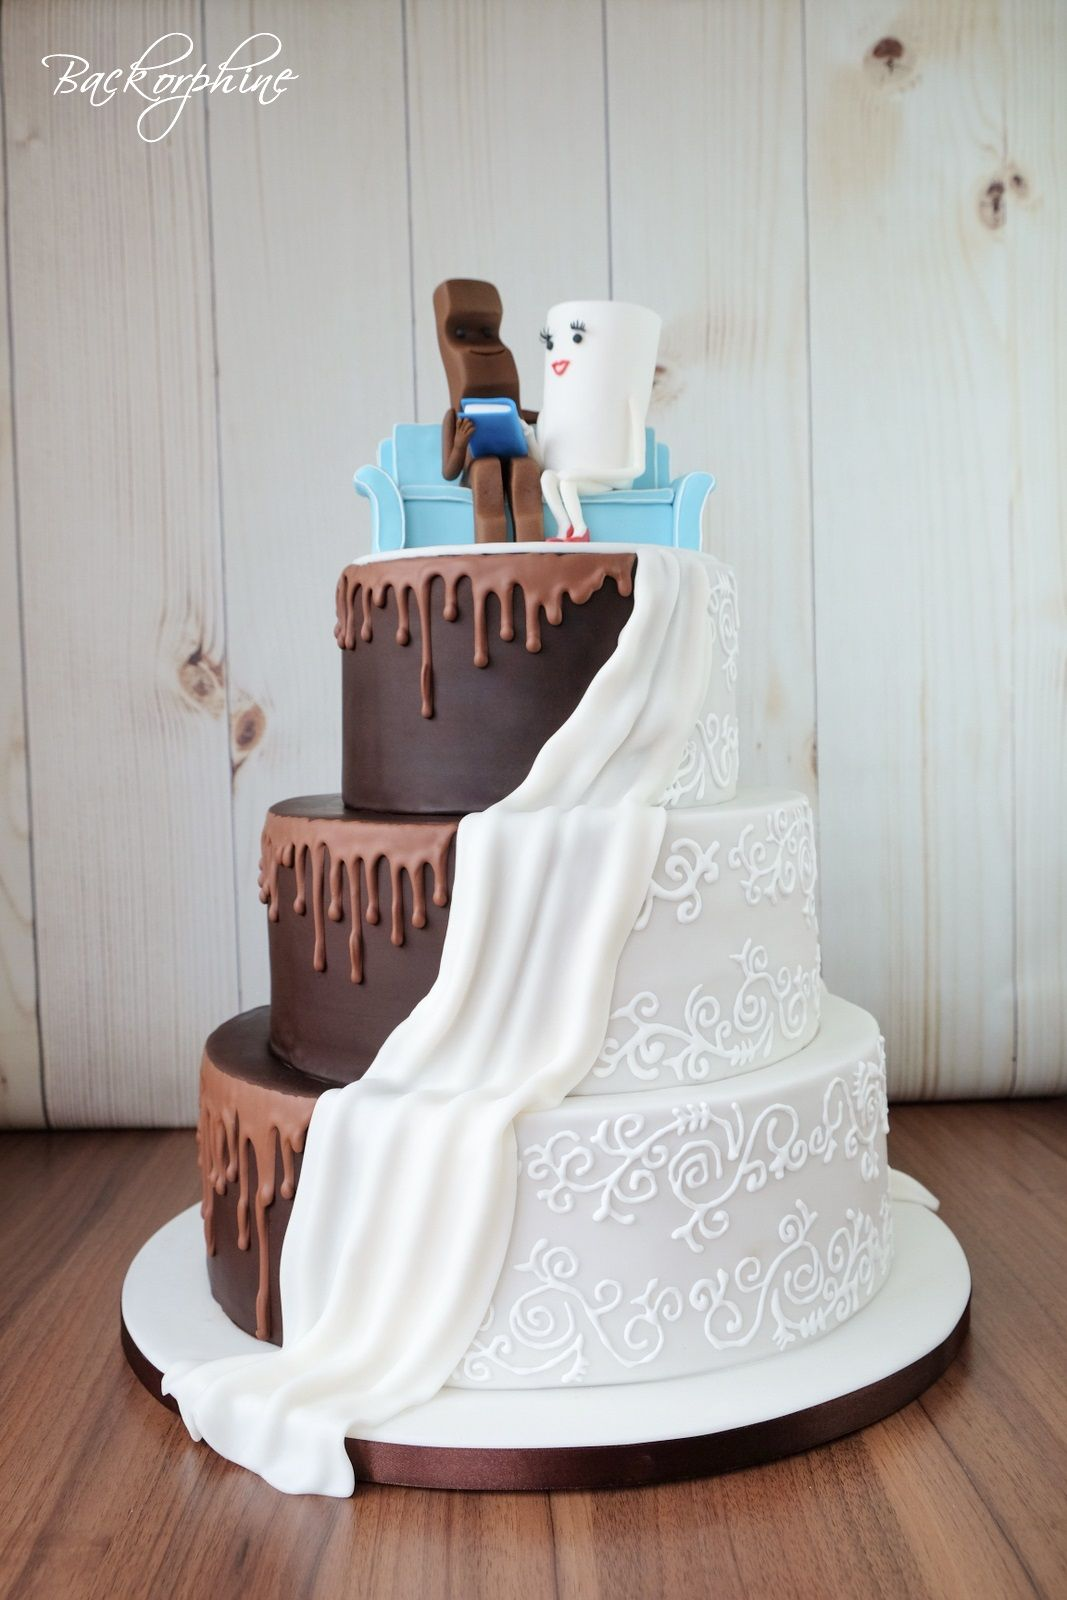 Kinderschokolade Hochzeitstorte Kinder Chocolate Wedding Cake